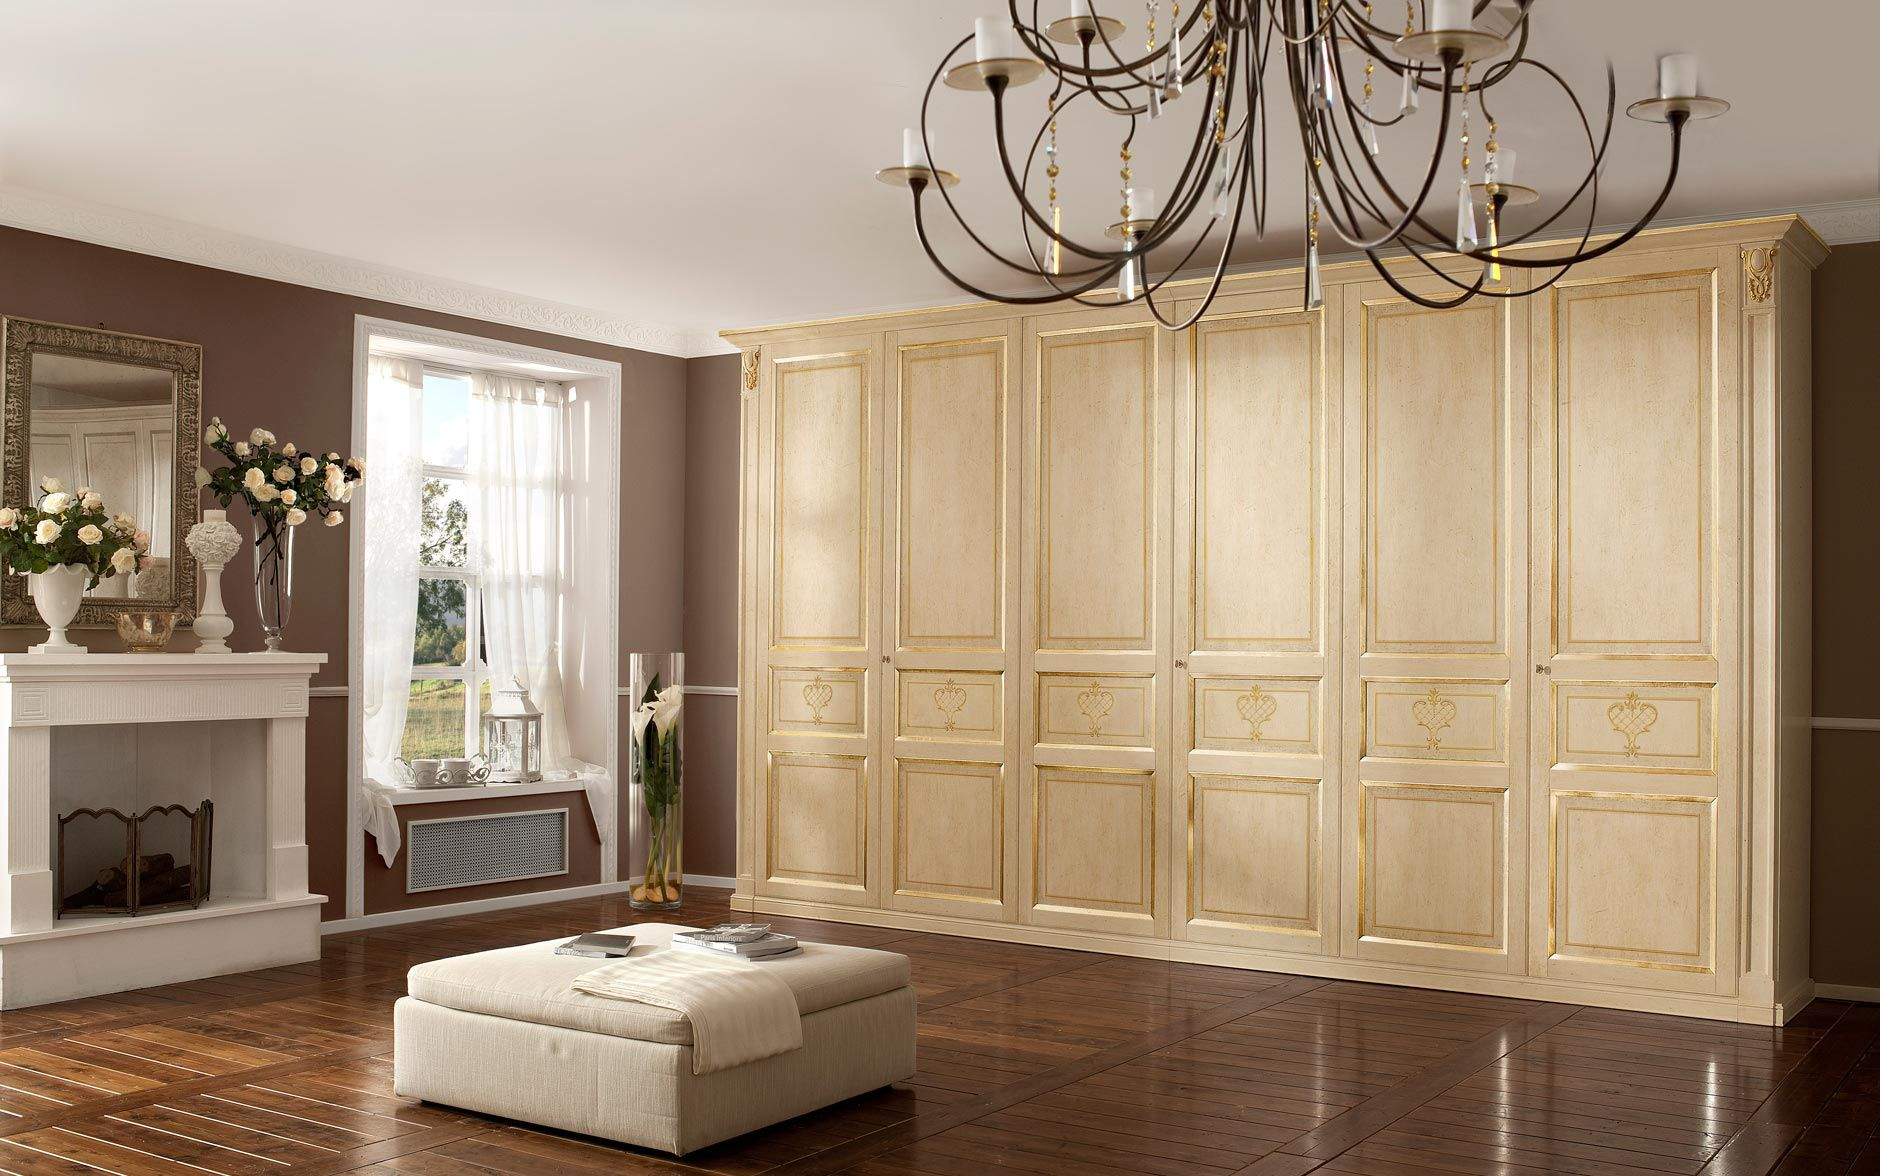 traditional wardrobe / wooden / with swing doors - firenze ... - Mobili Design Firenze